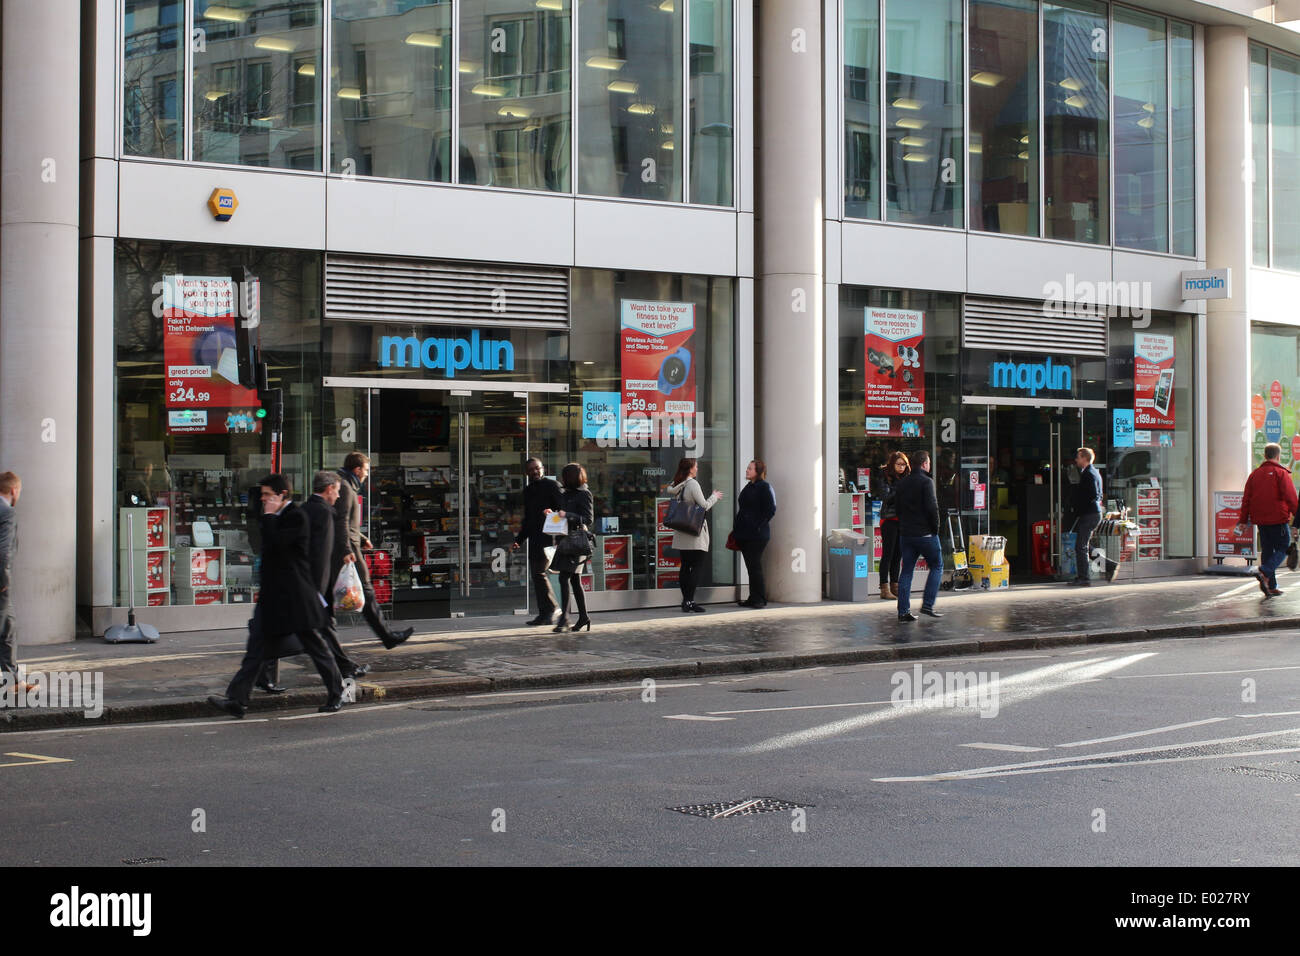 Maplin shop near St Pauls Cathedral - Stock Image